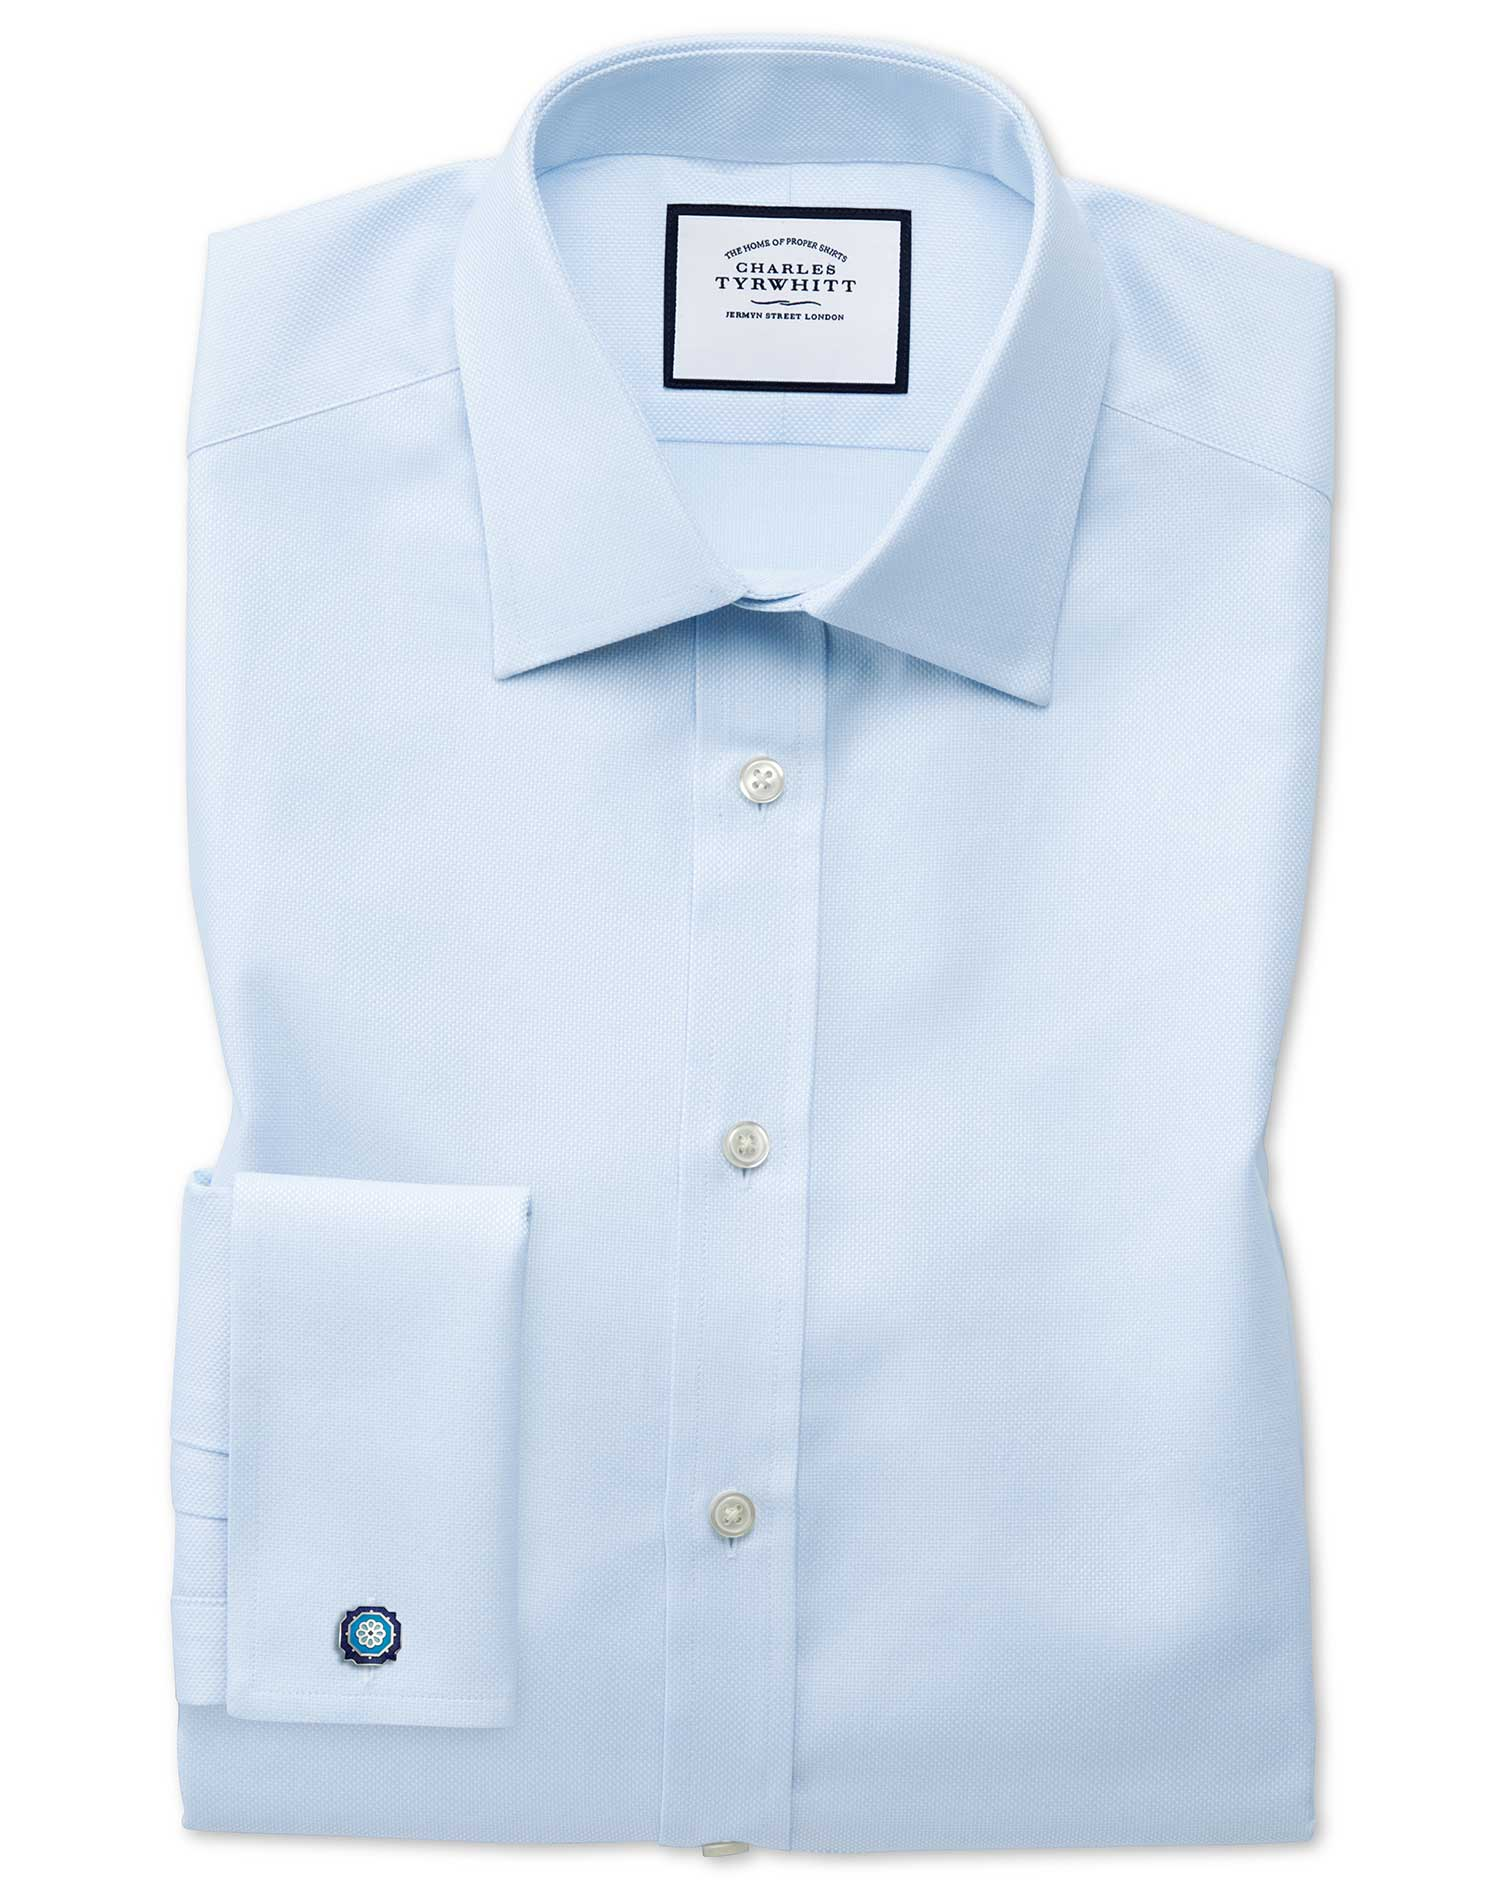 Classic Fit Egyptian Cotton Royal Oxford Sky Blue Formal Shirt Double Cuff Size 17/37 by Charles Tyr